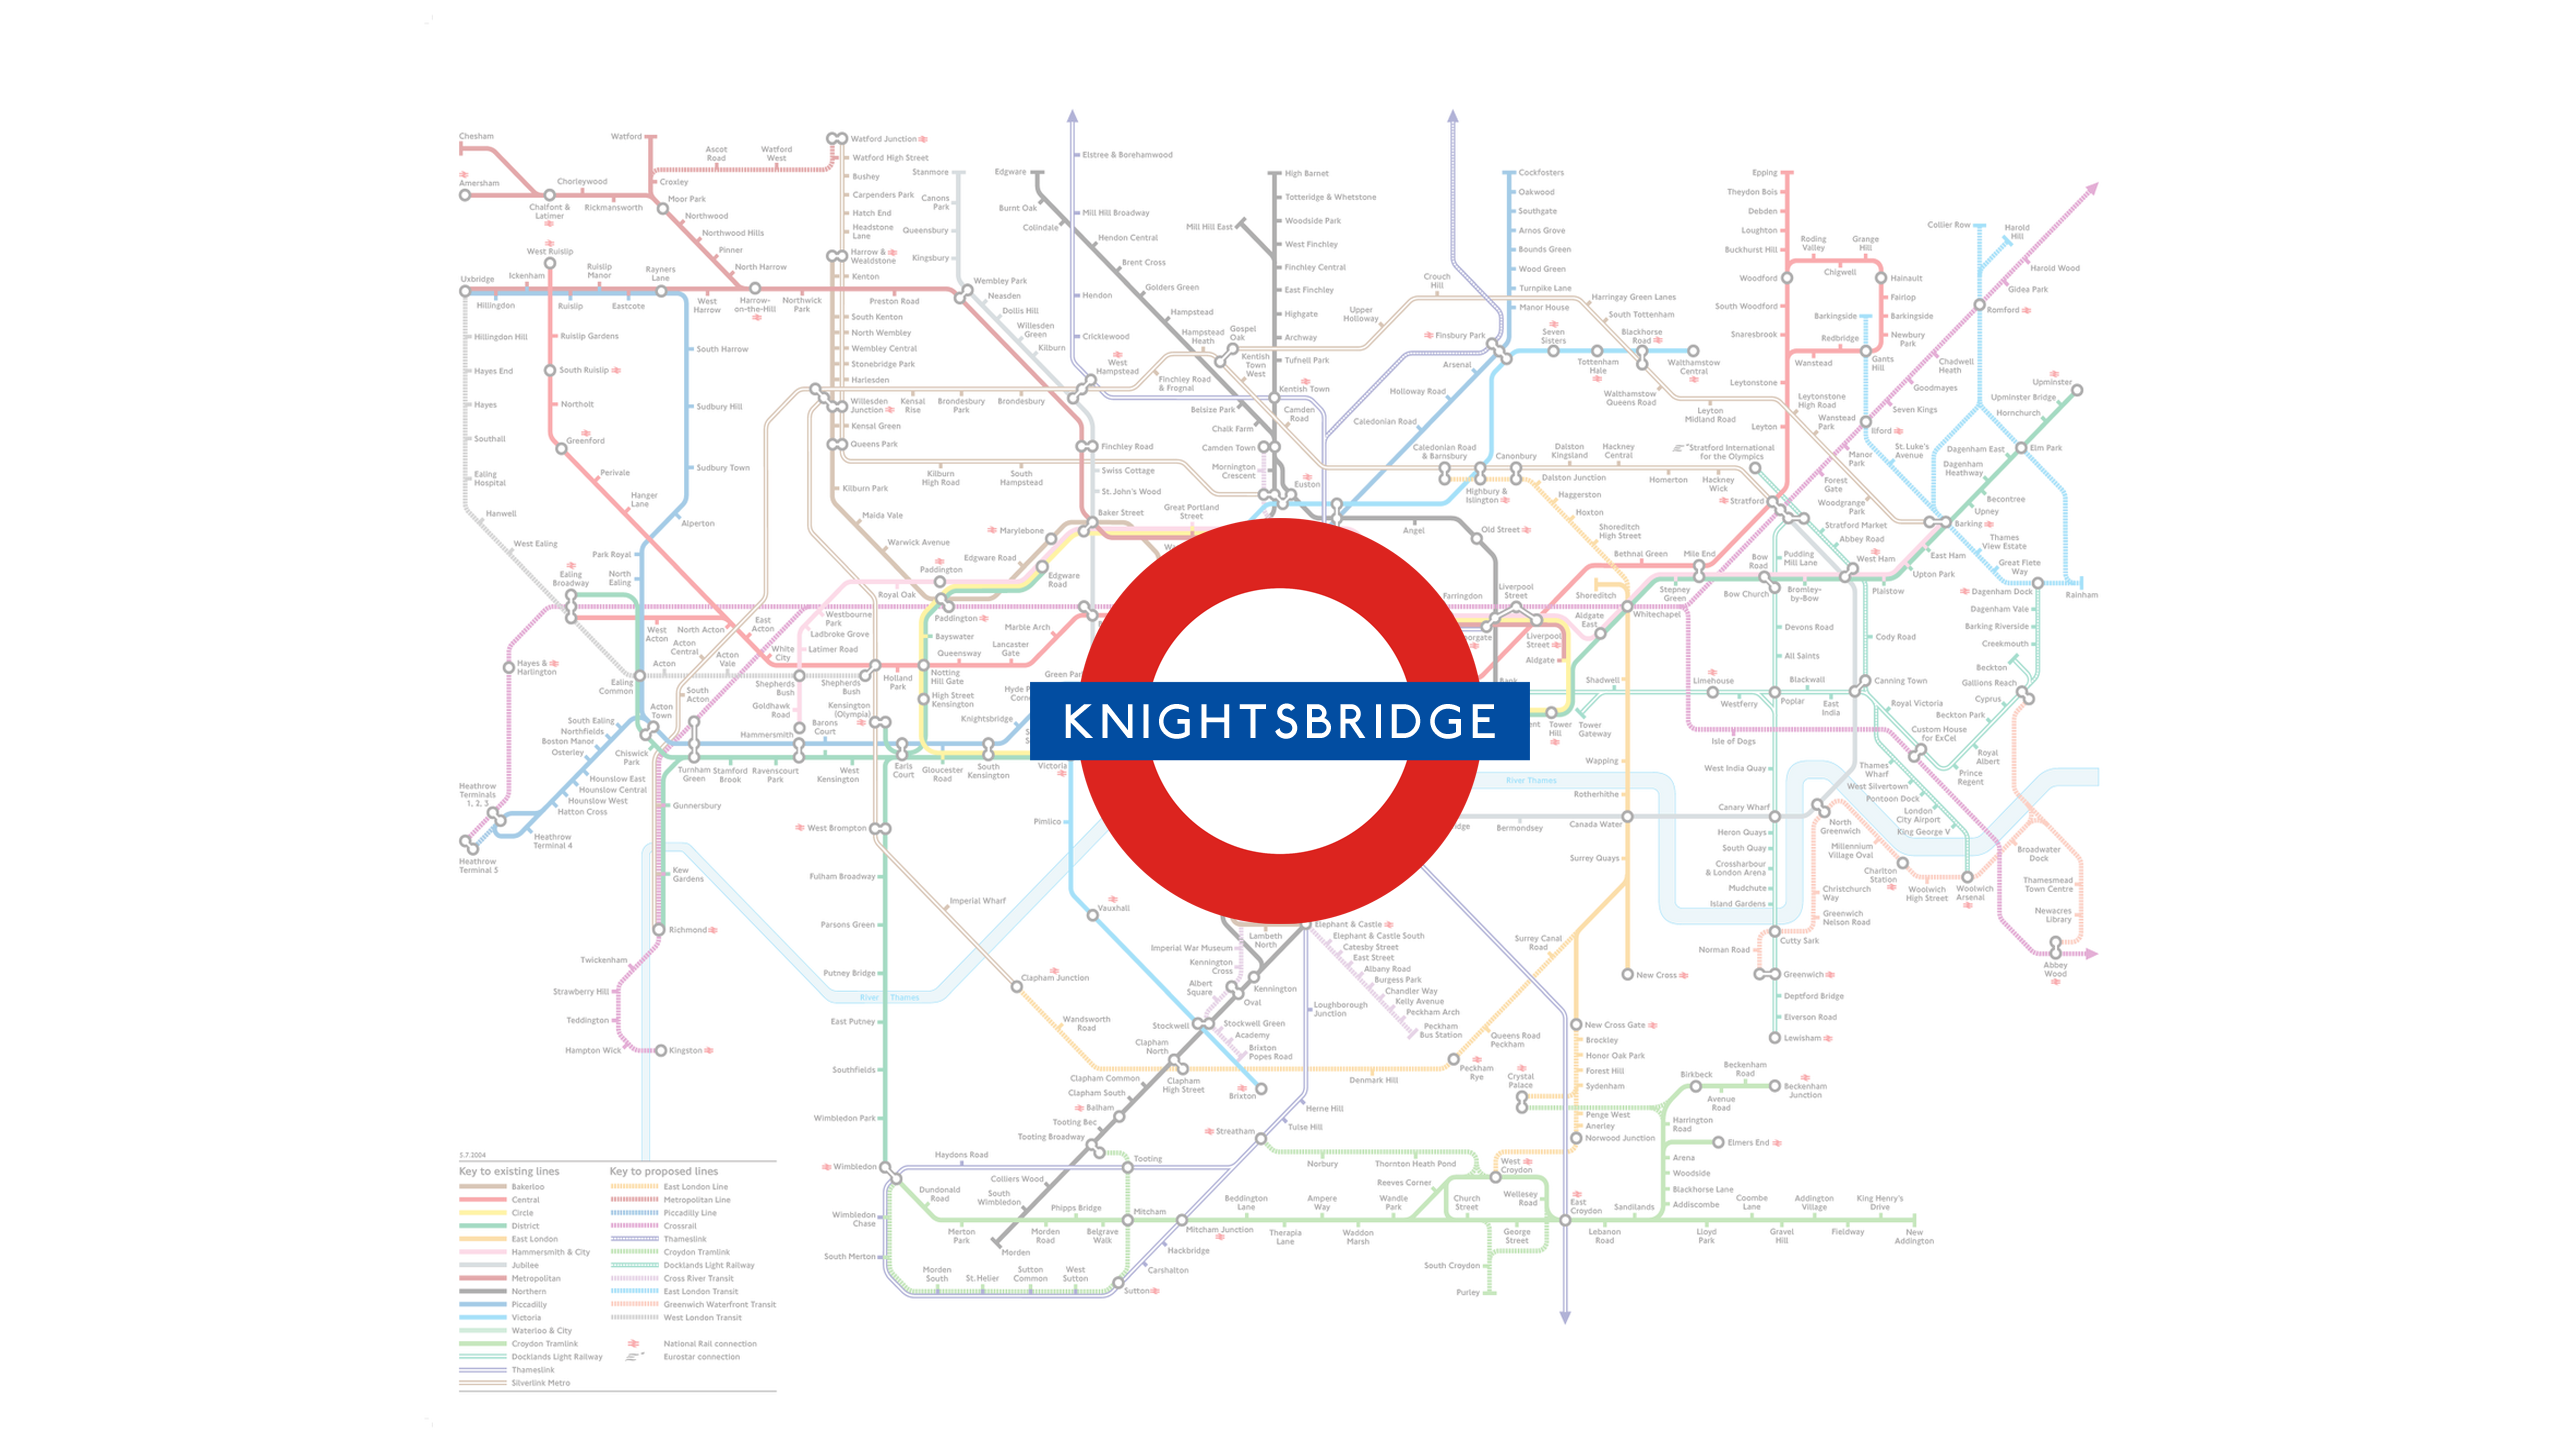 Knightsbridge (Map)